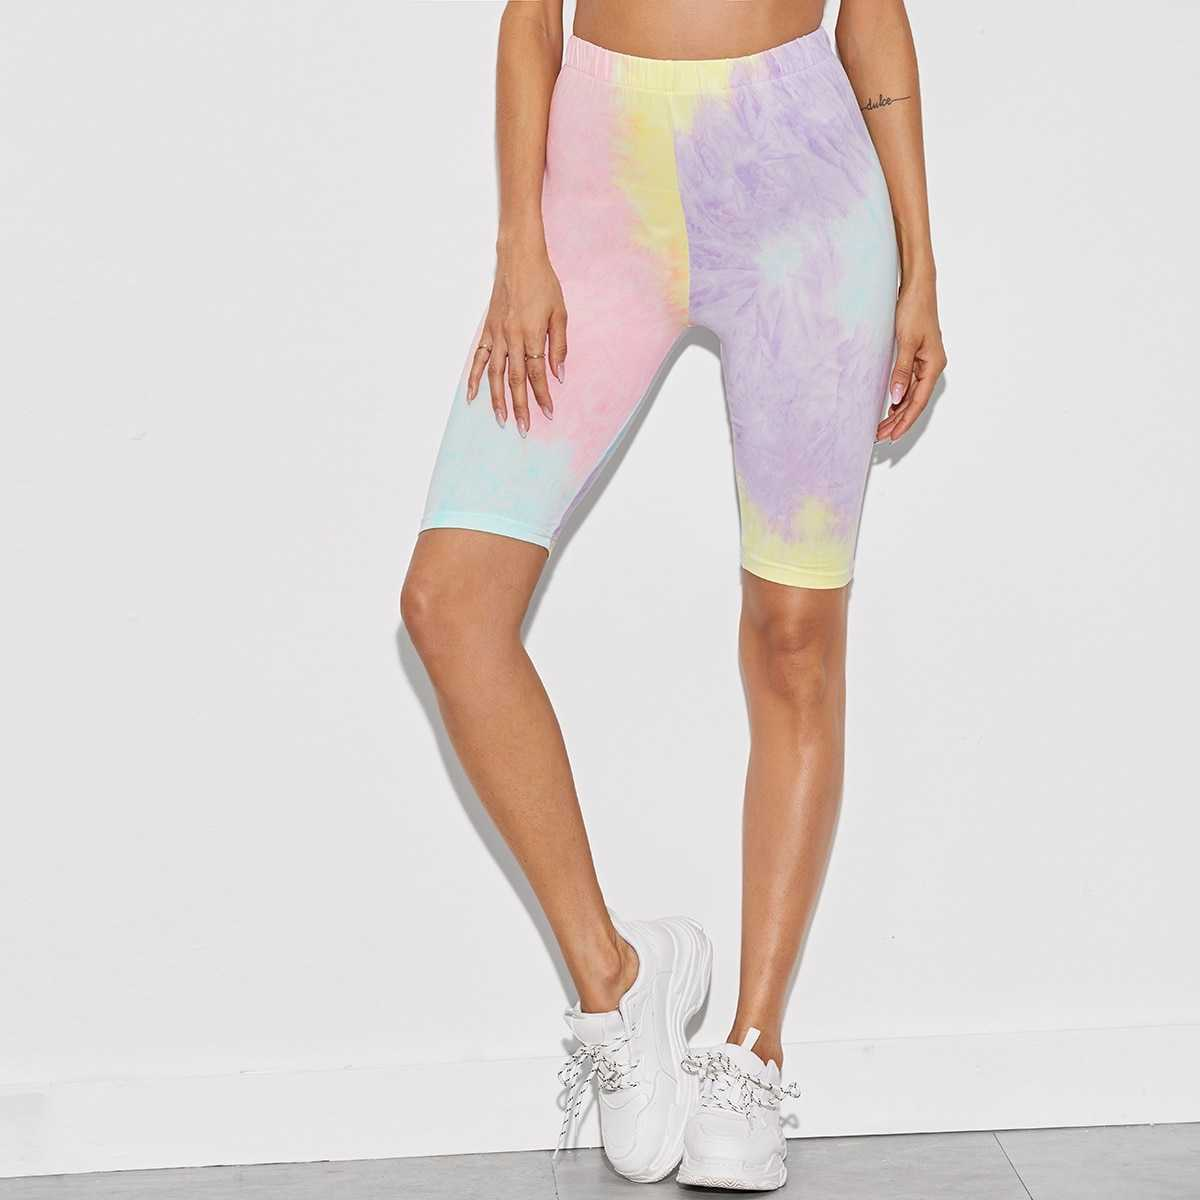 Tie Dye Pastel Color Cycling Shorts in Multicolor by ROMWE on GOOFASH